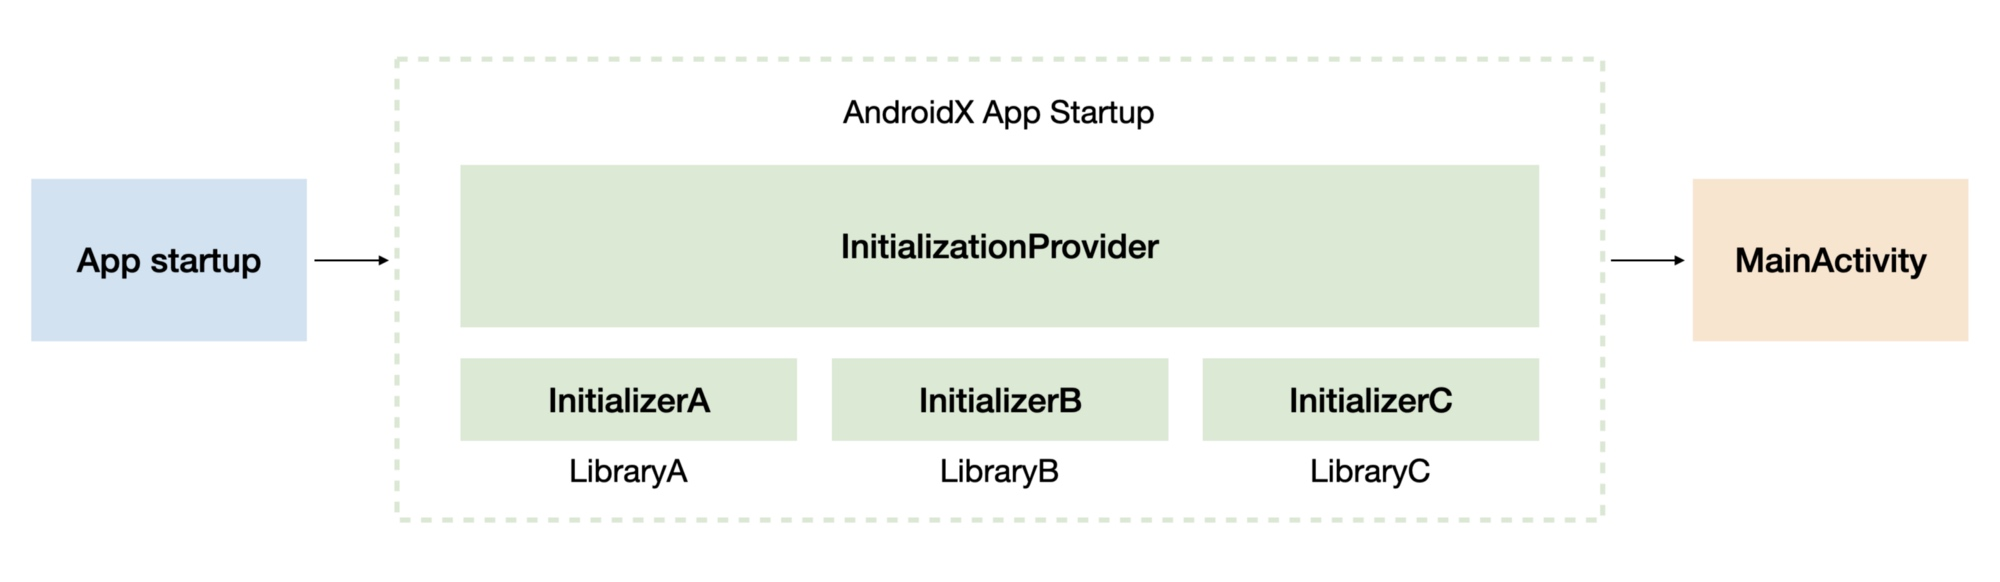 LibraryA, LibraryB, and LibraryC initialized by AndroidX Startup